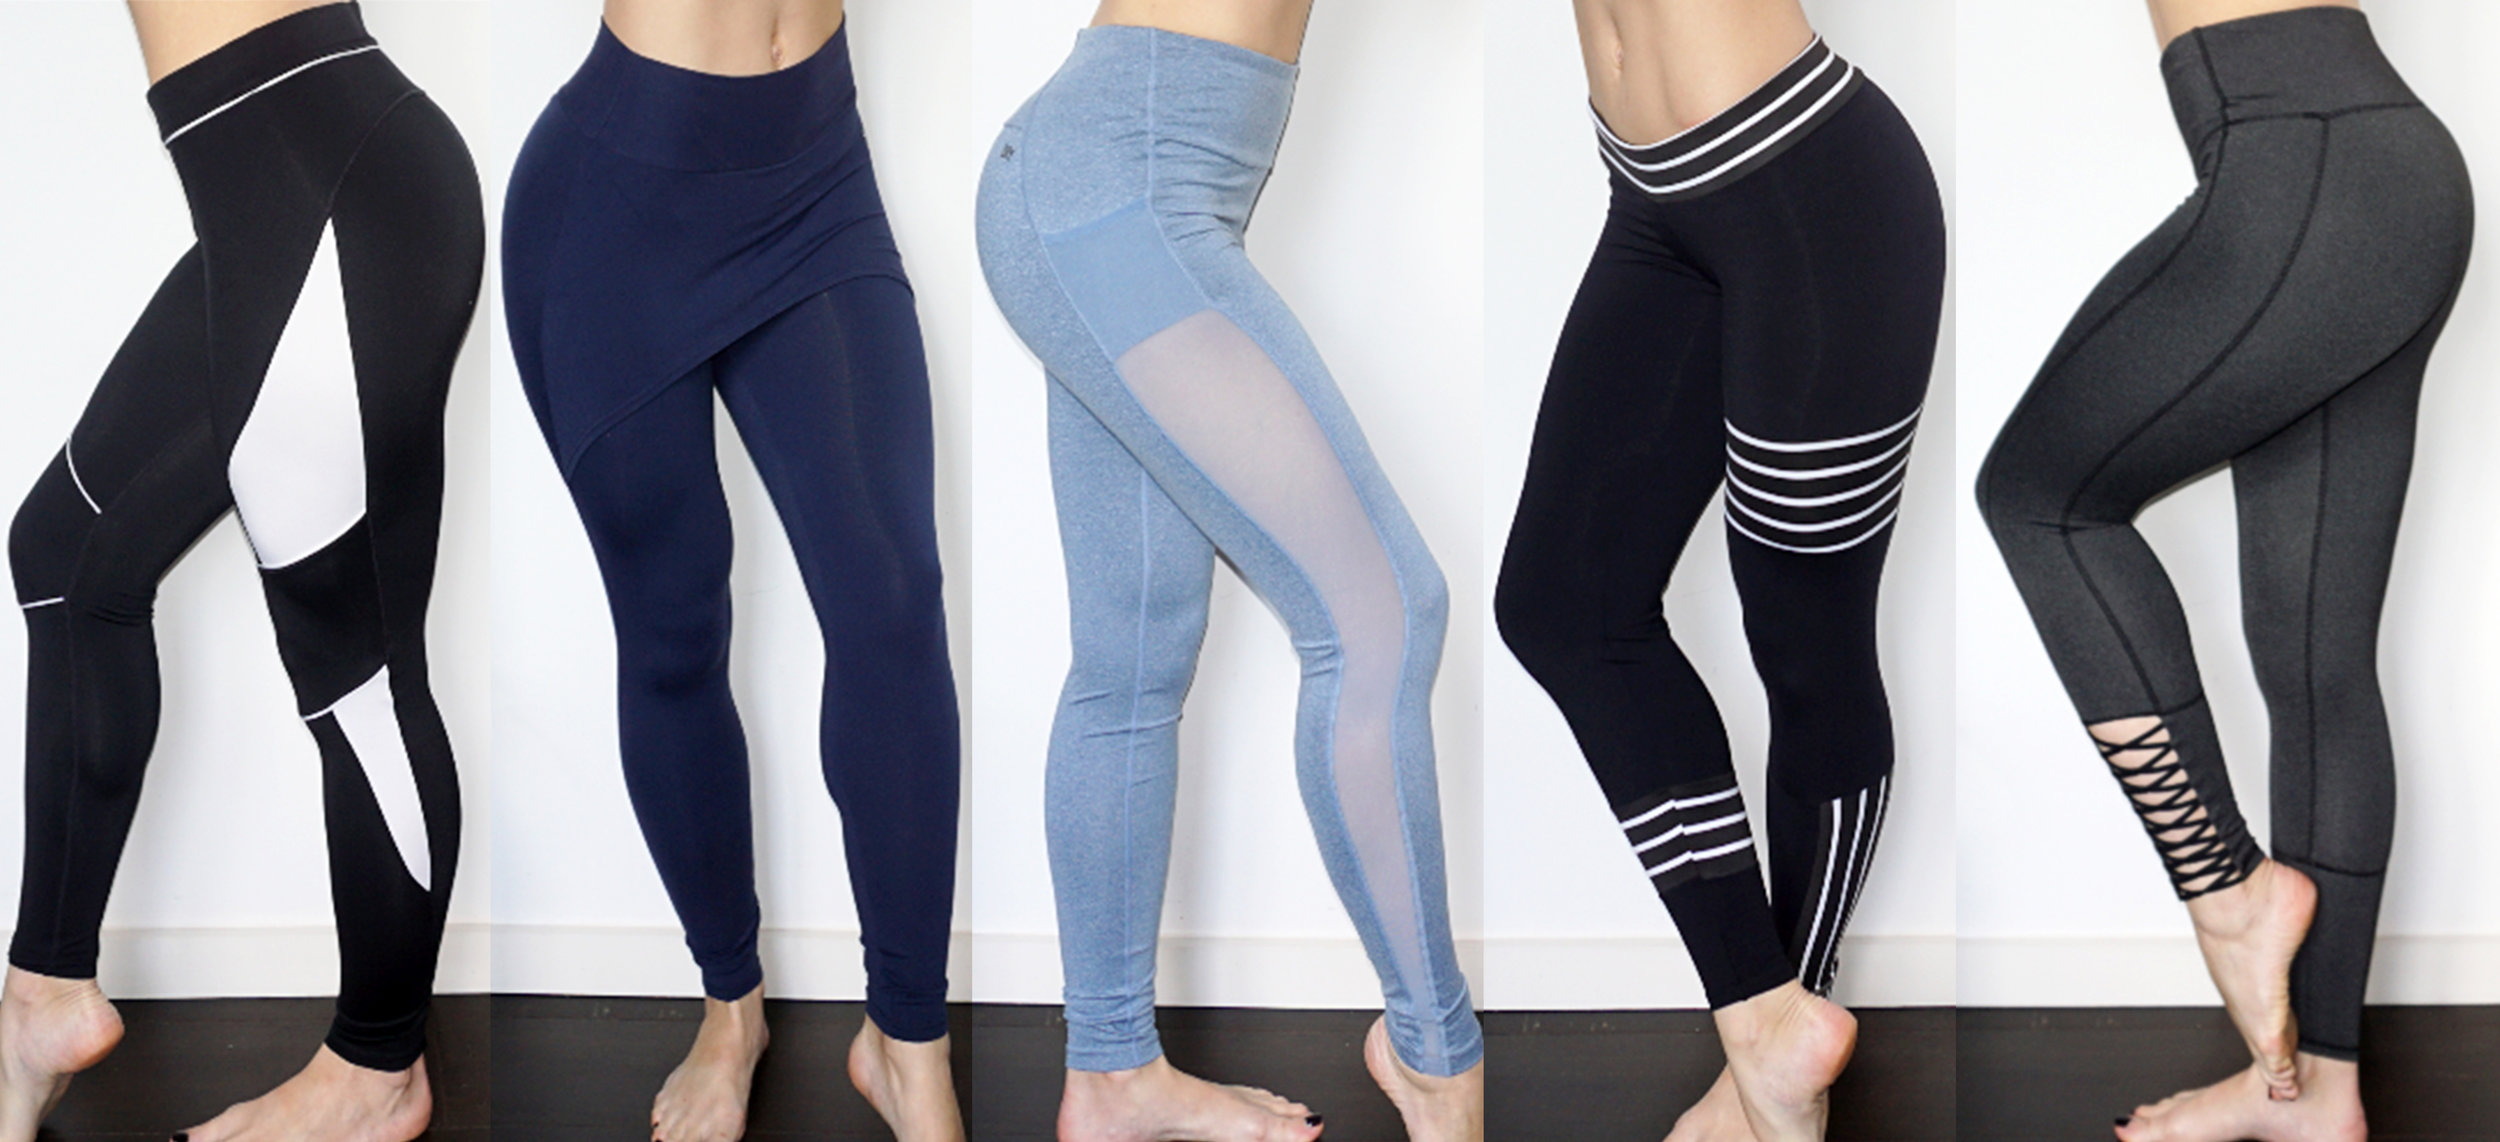 squat proof leggings best gym